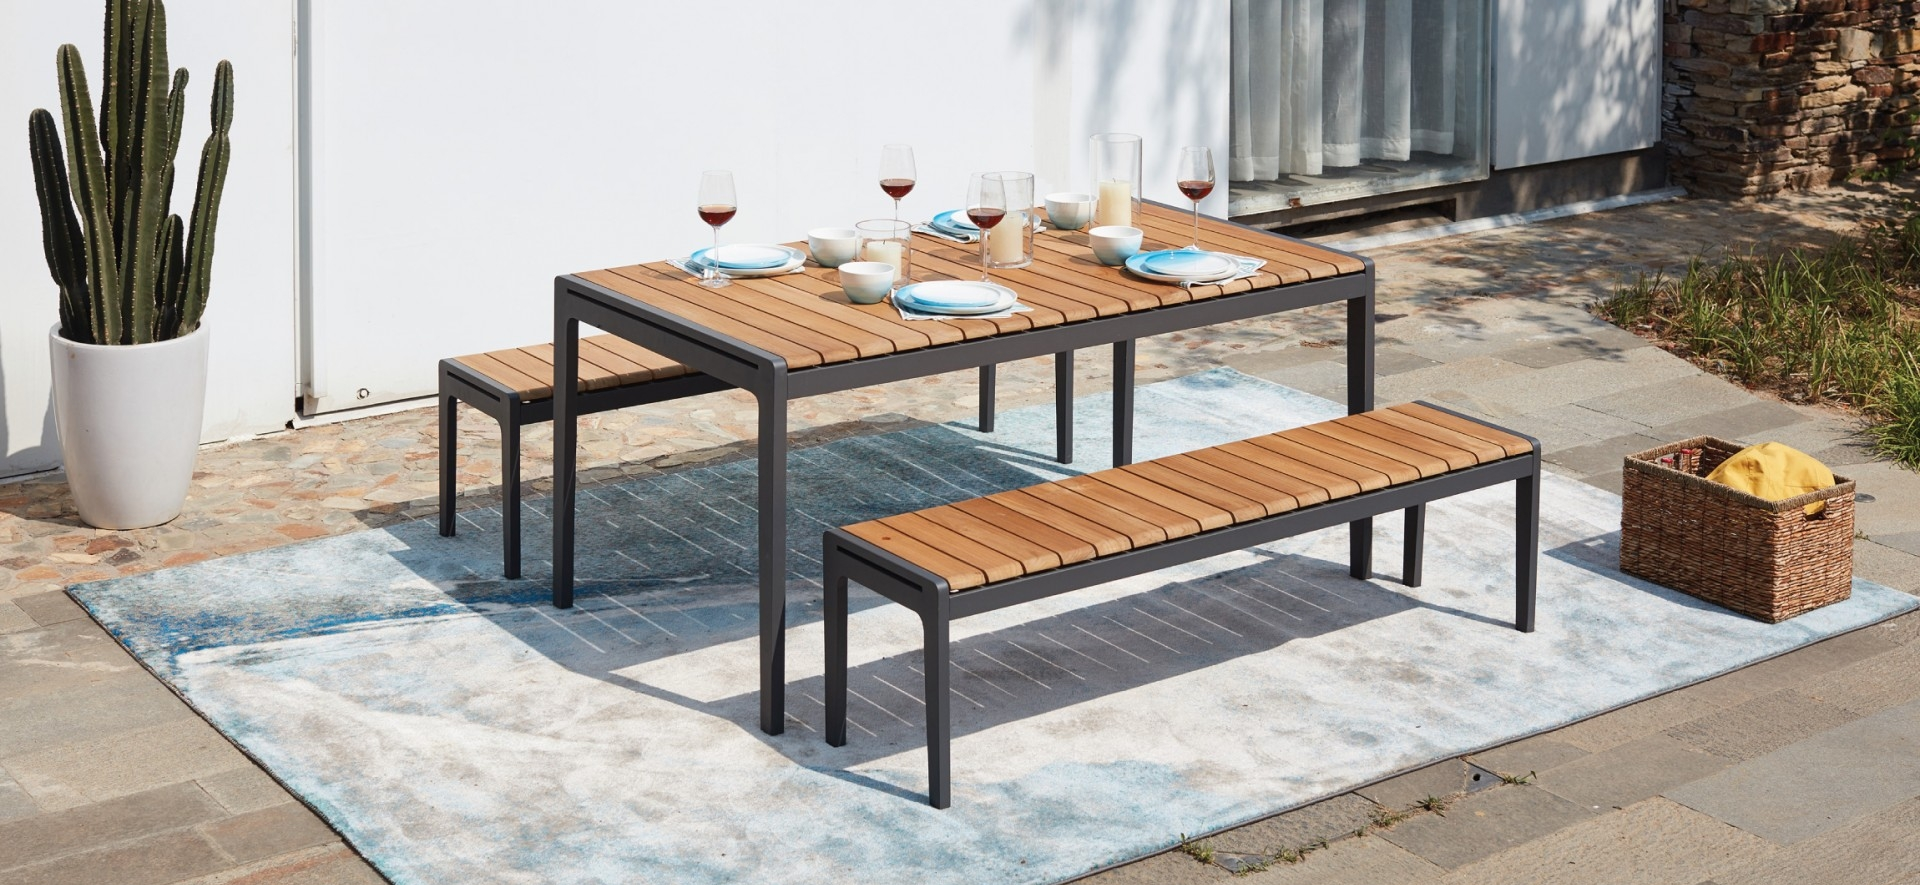 Teak Outdoor Dining Table with Bench Seats